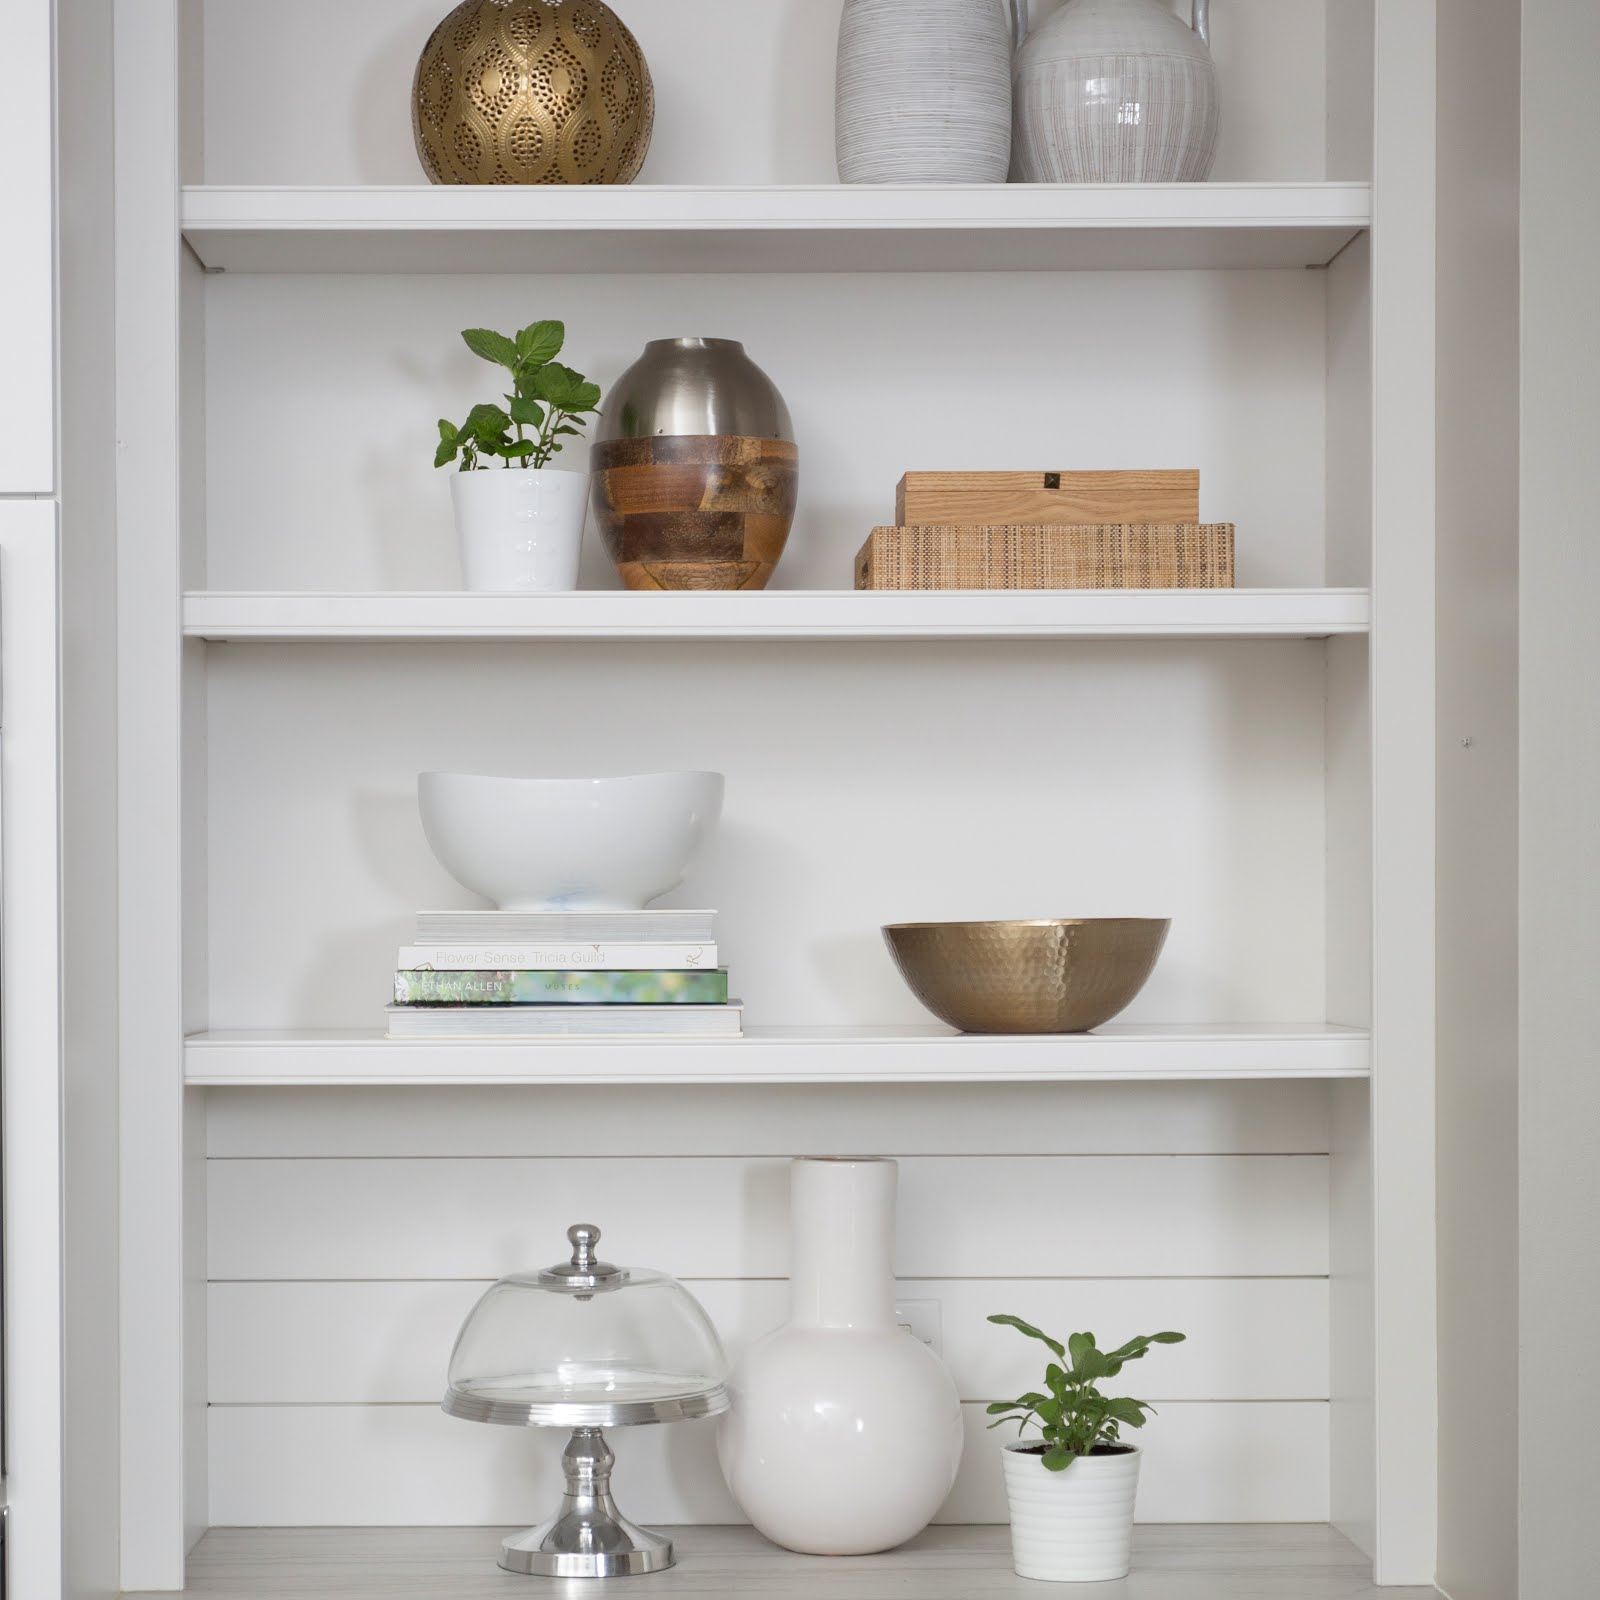 My ScoopCharlotte feature : Shelf Styling